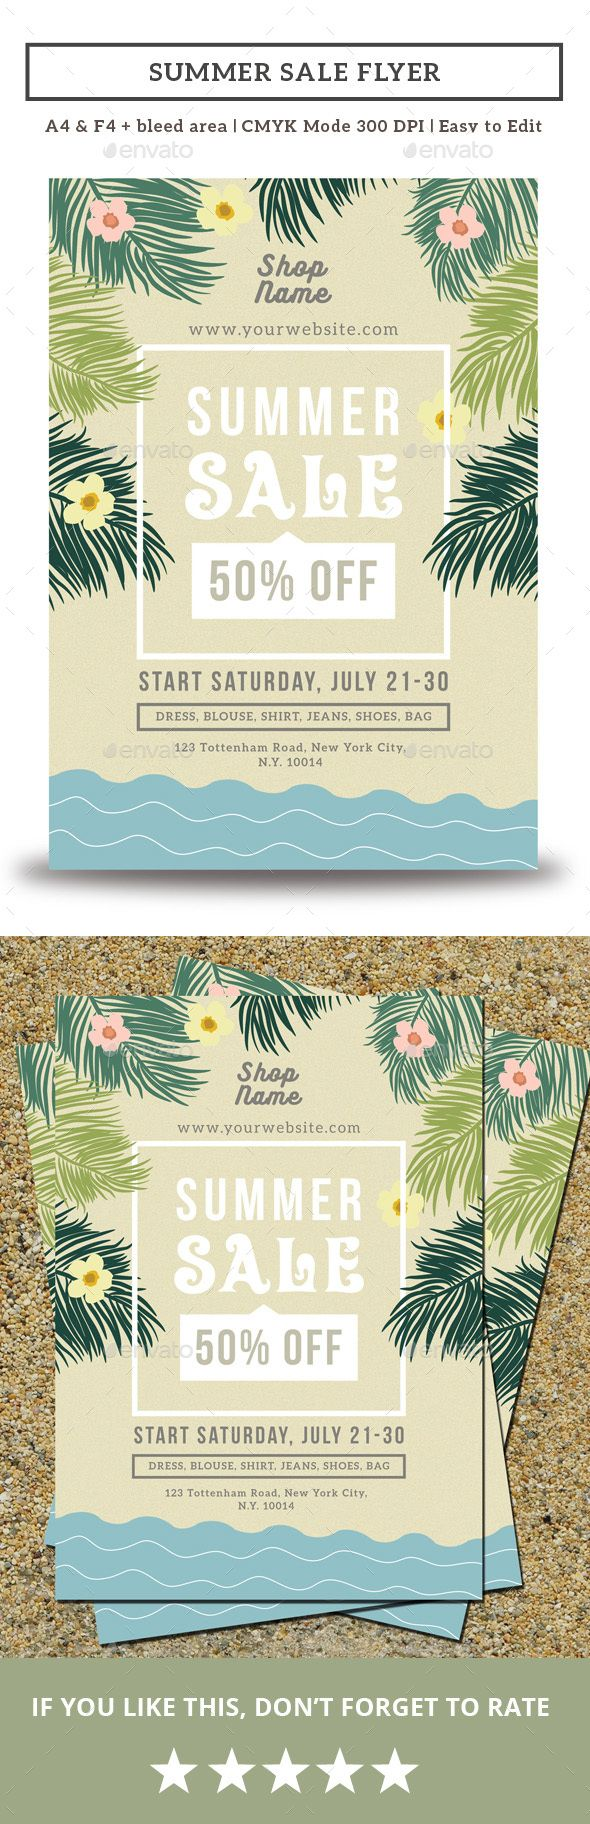 Summer Sale Flyer  Summer Sale Flyer Template And Summer